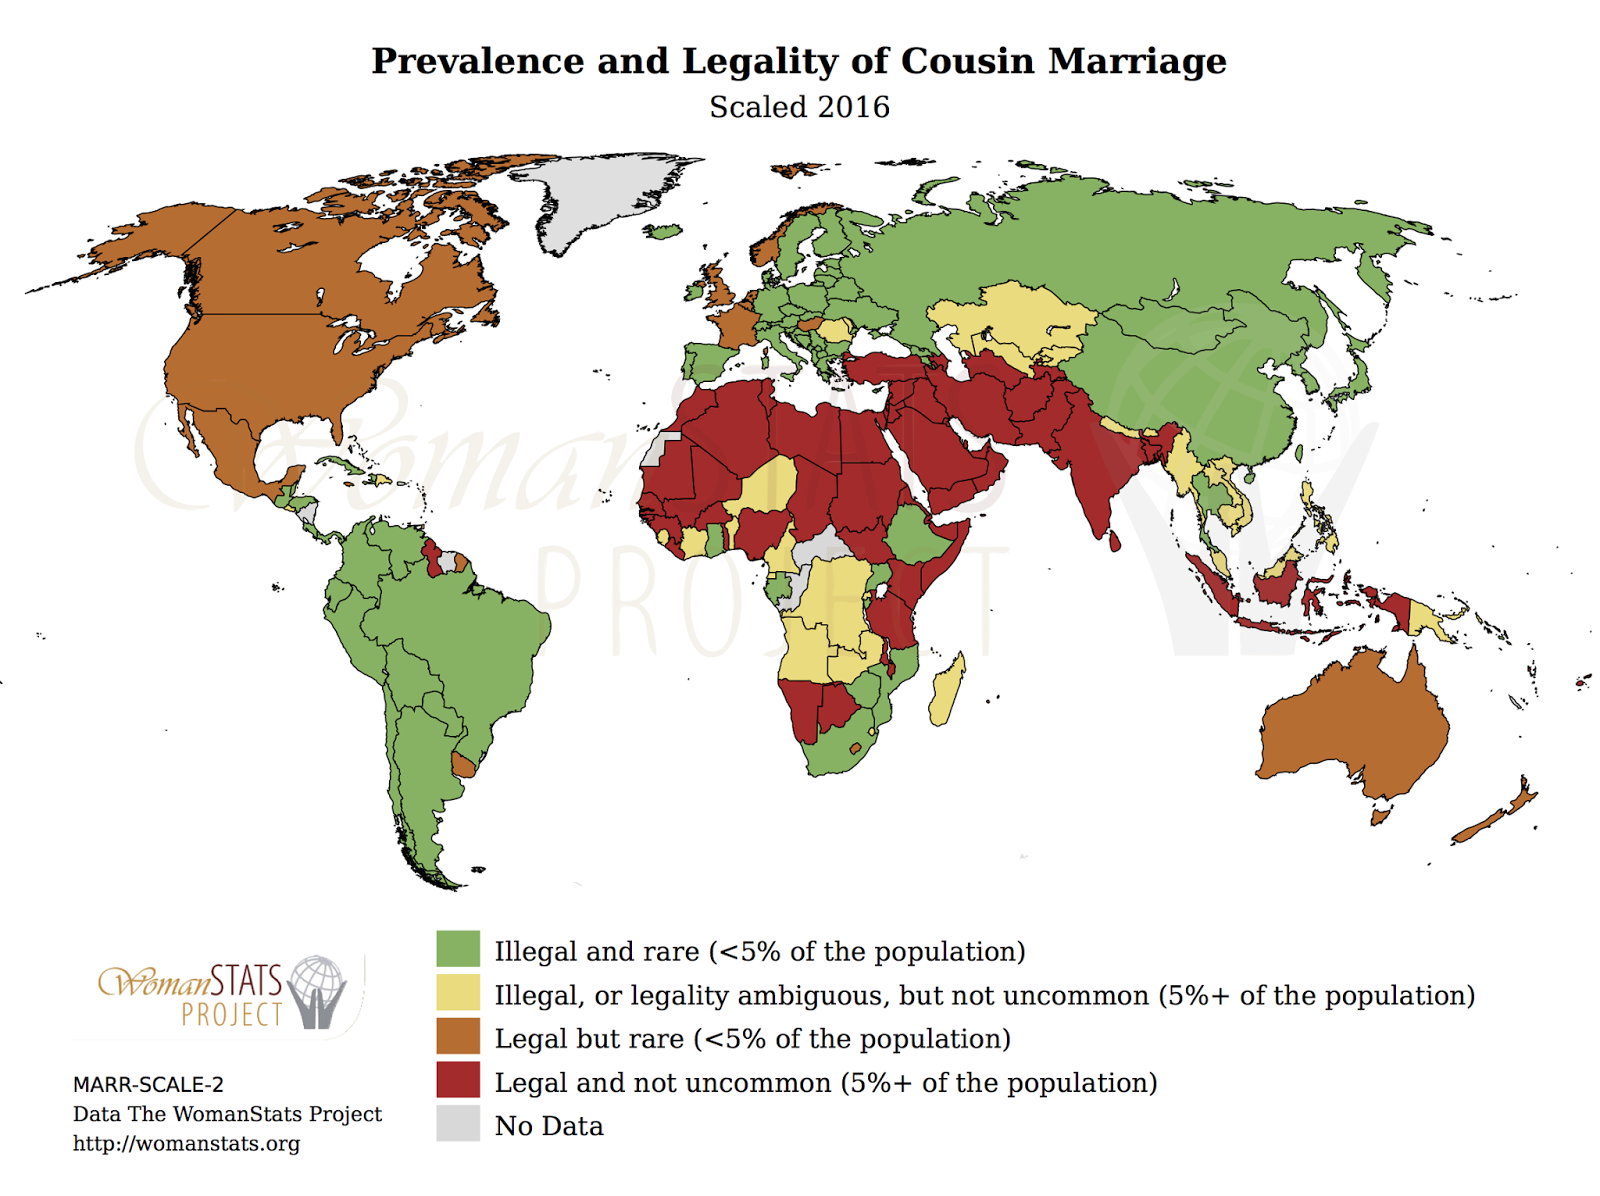 Prevalence & legality of cousin marriage (2016)